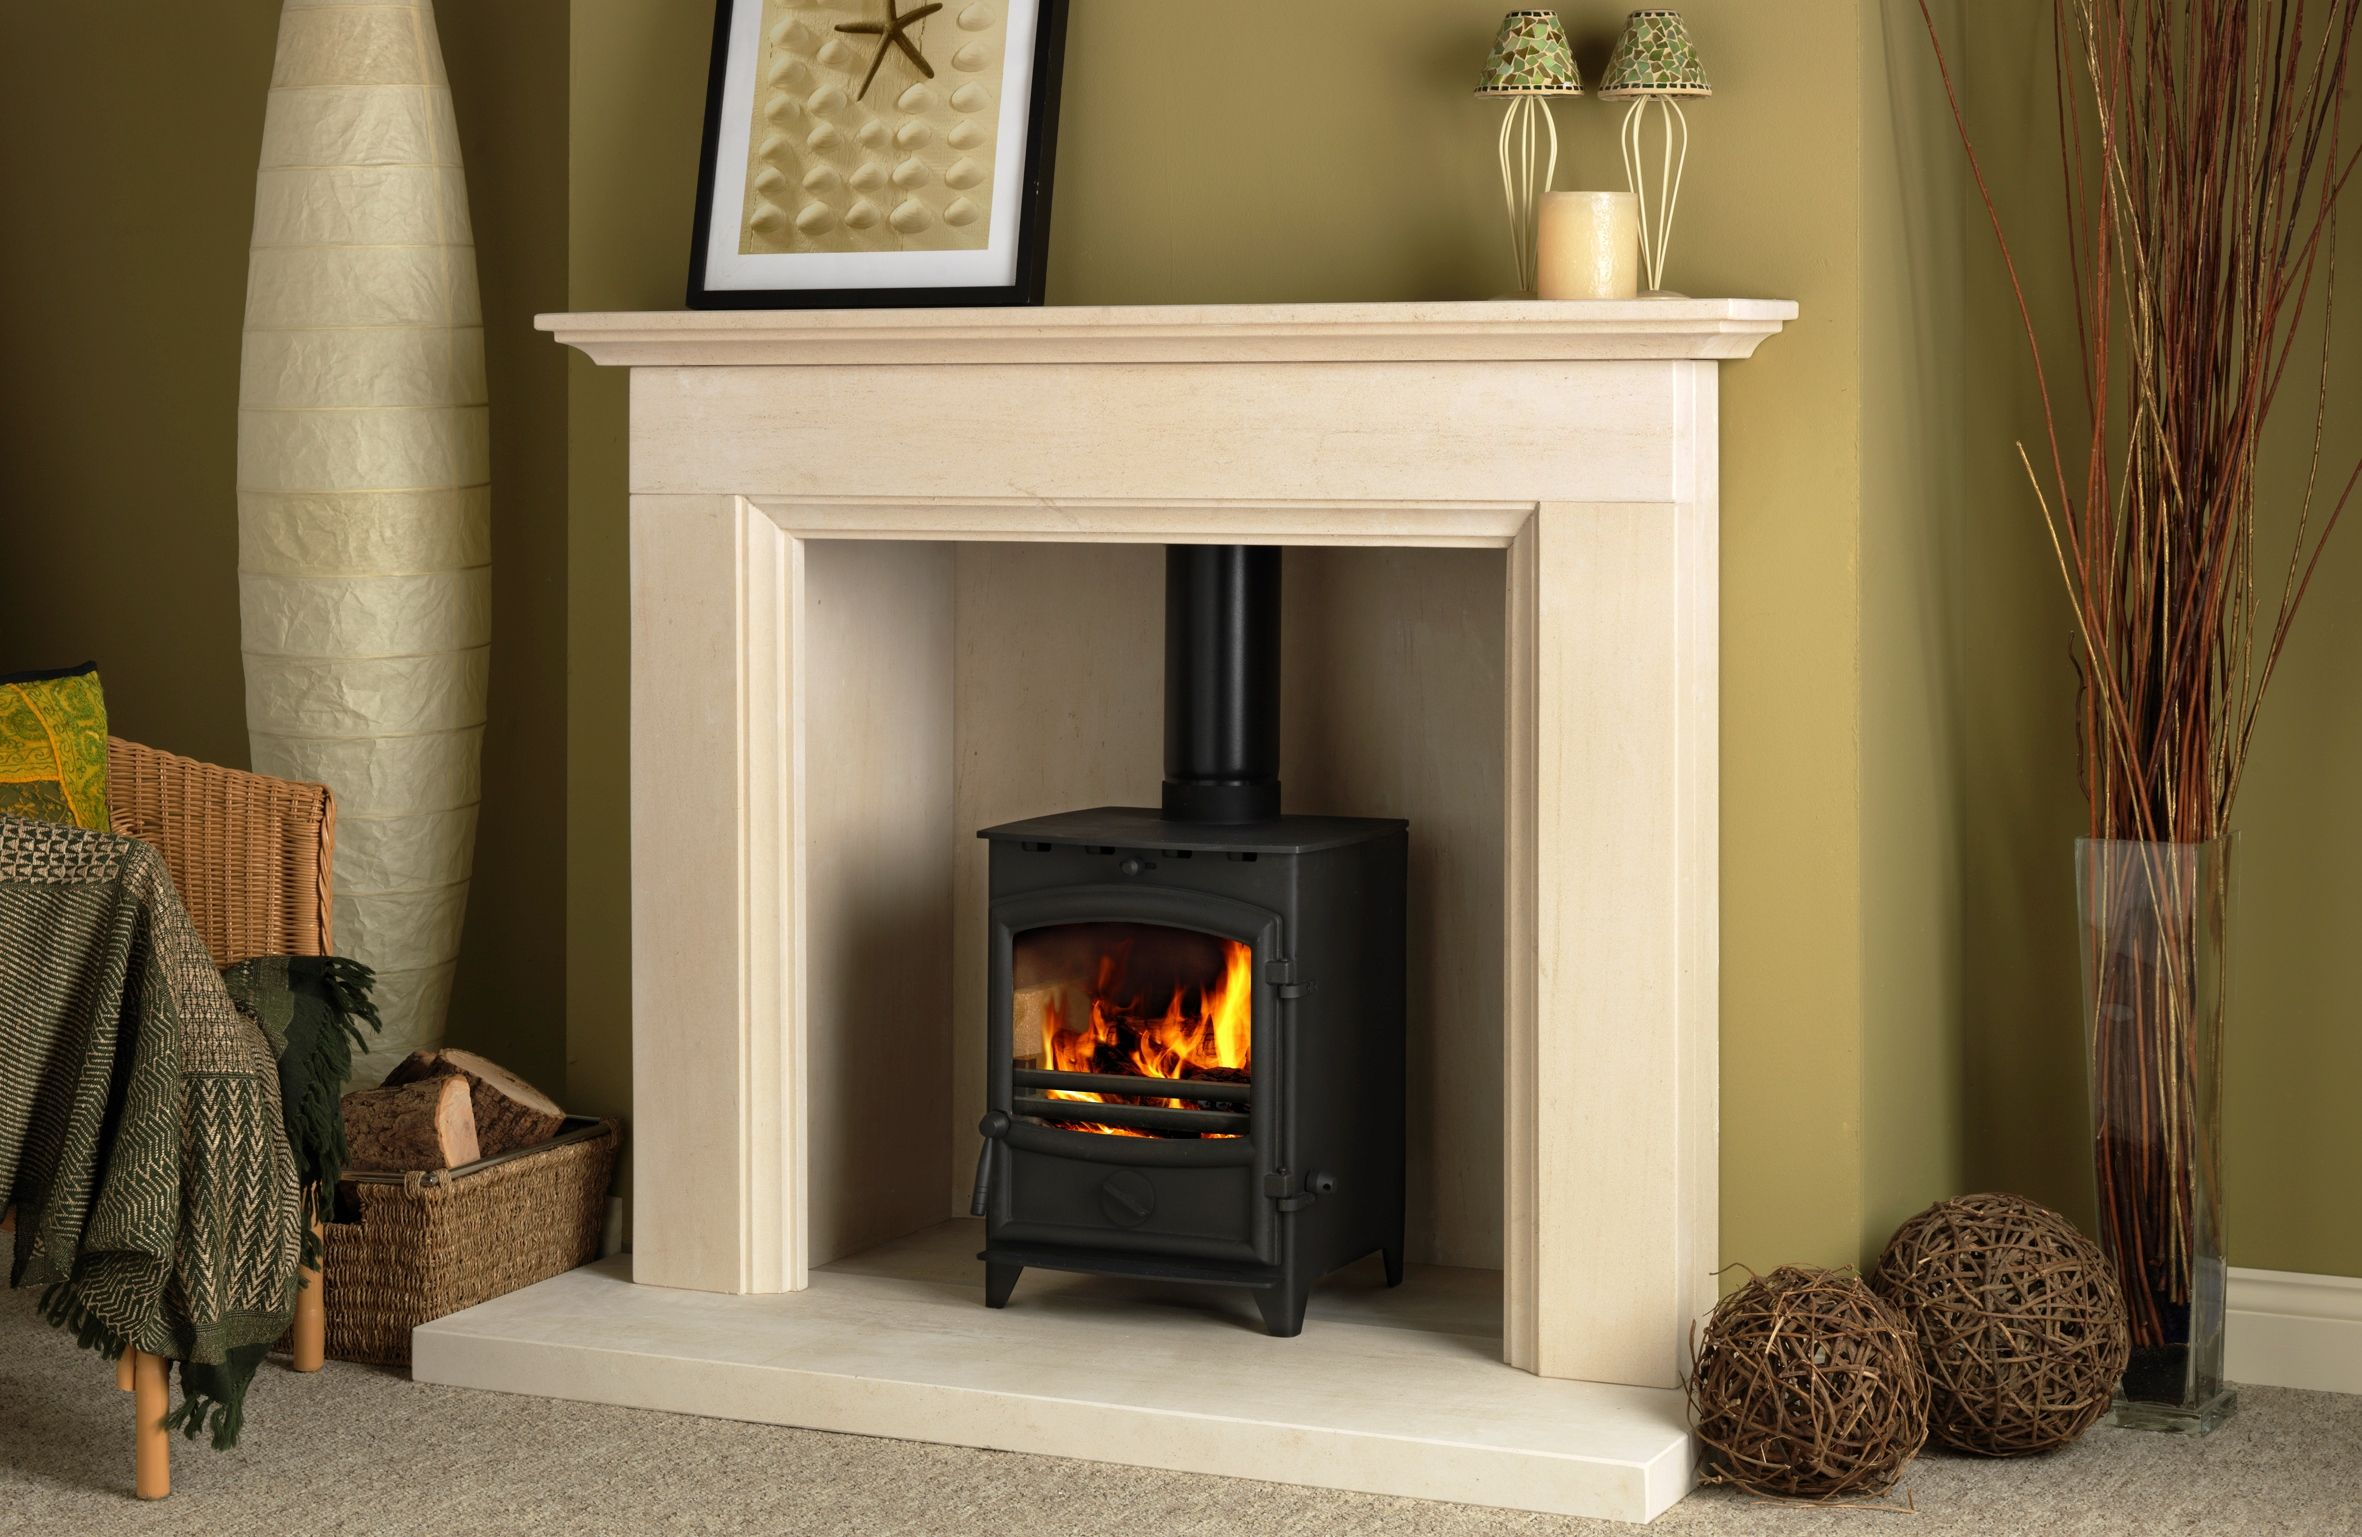 wood burning stoves fire surrounds - Google Search | Fire Places |  Pinterest | Fire surround, Wood burning and Stove